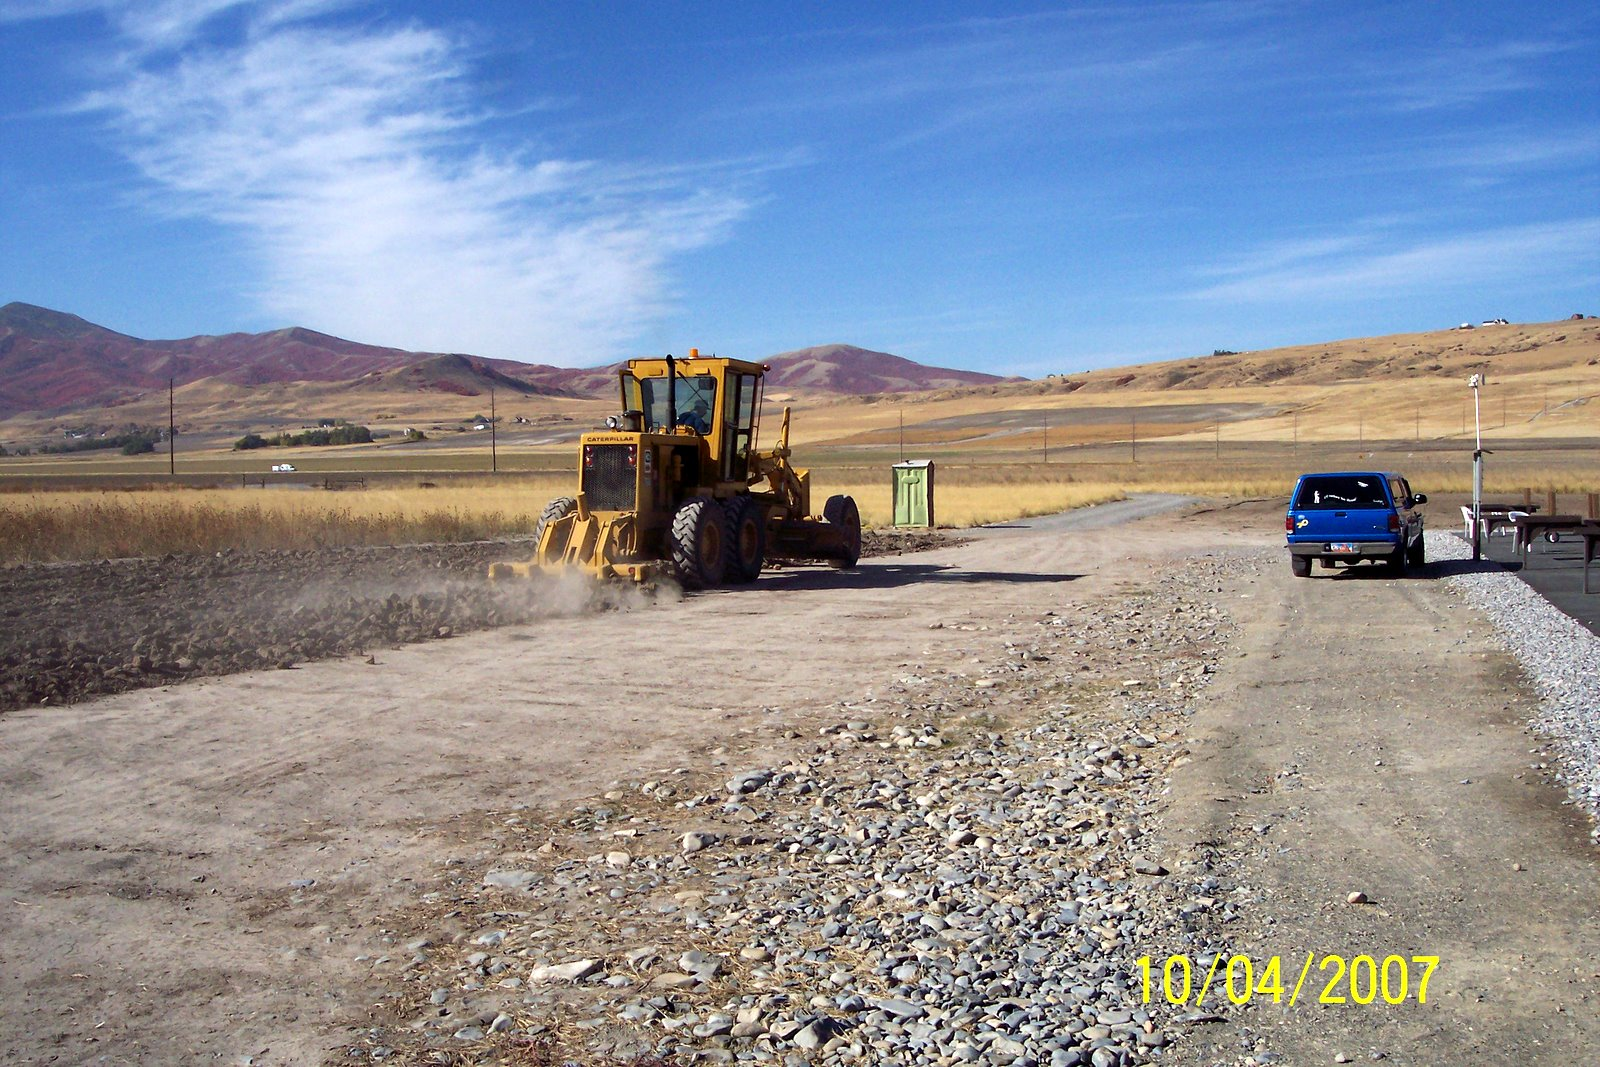 FARMER LARRY ROUNDY WORKS OVER THE PARKING AREA.